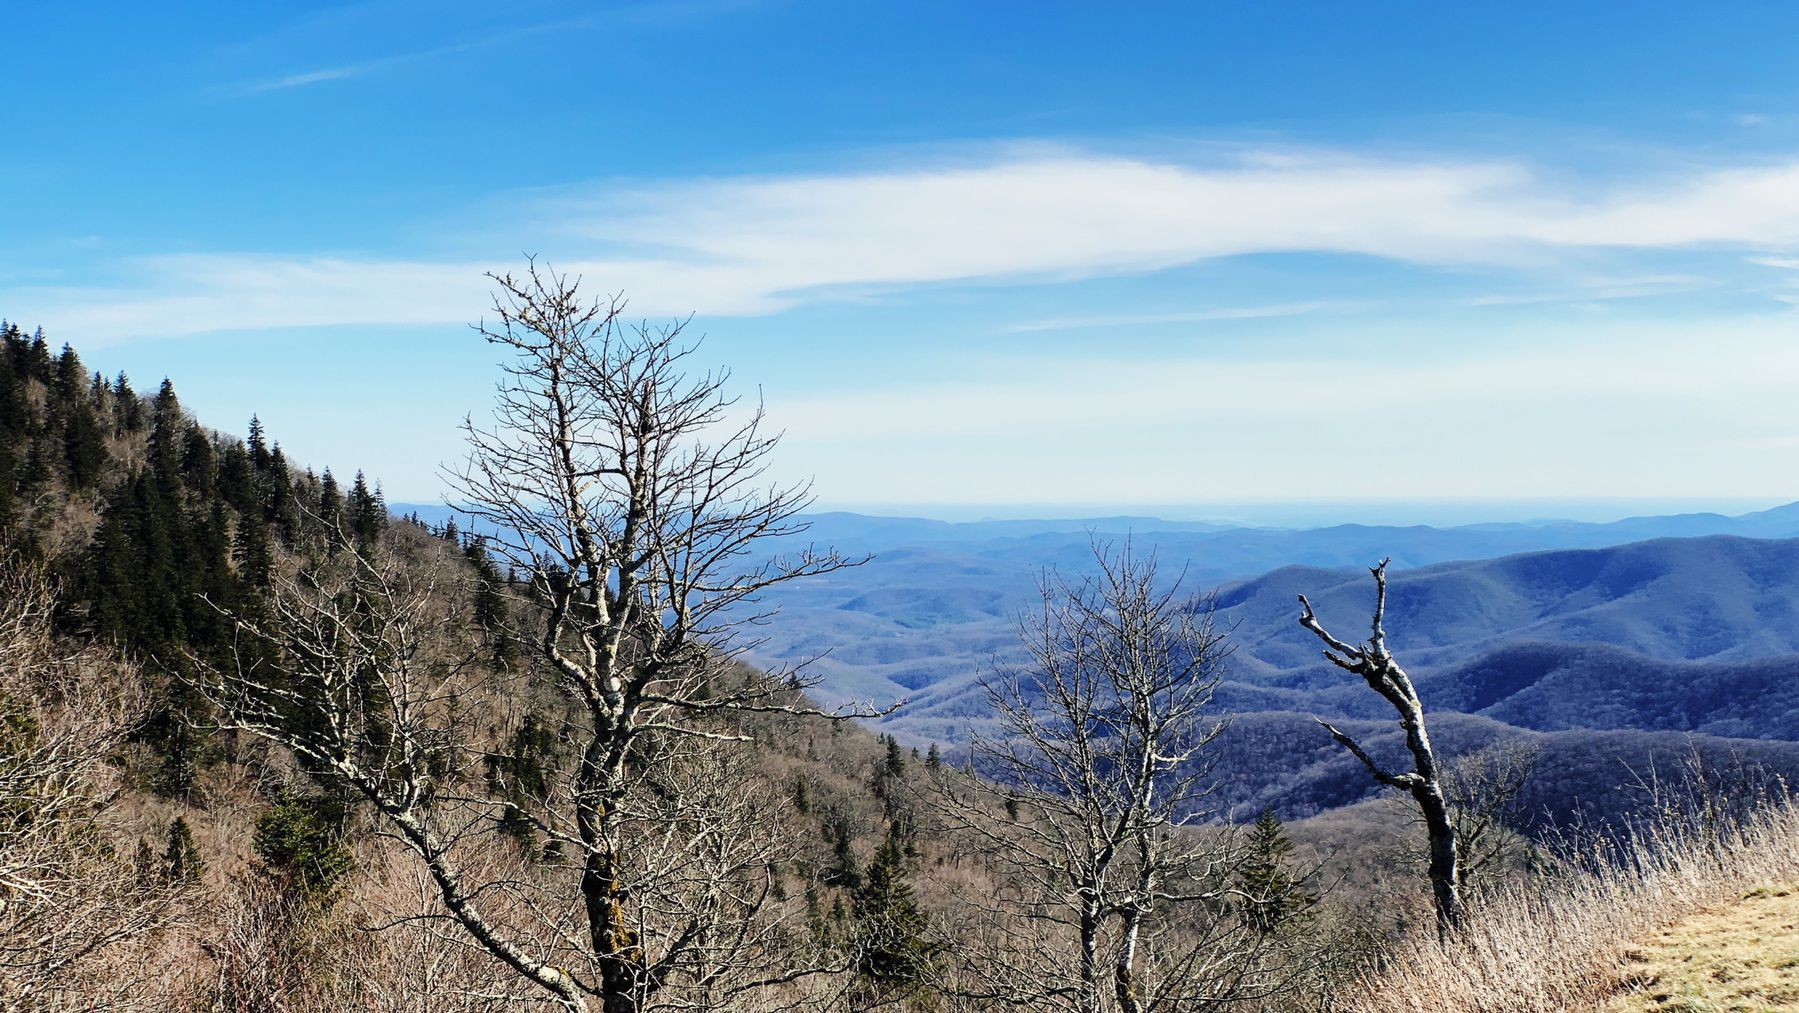 """Trees put the """"blue"""" in Blue Ridge, from the isoprene released into the atmosphere, thereby contributing to the characteristic haze on the mountains and their distinctive color."""